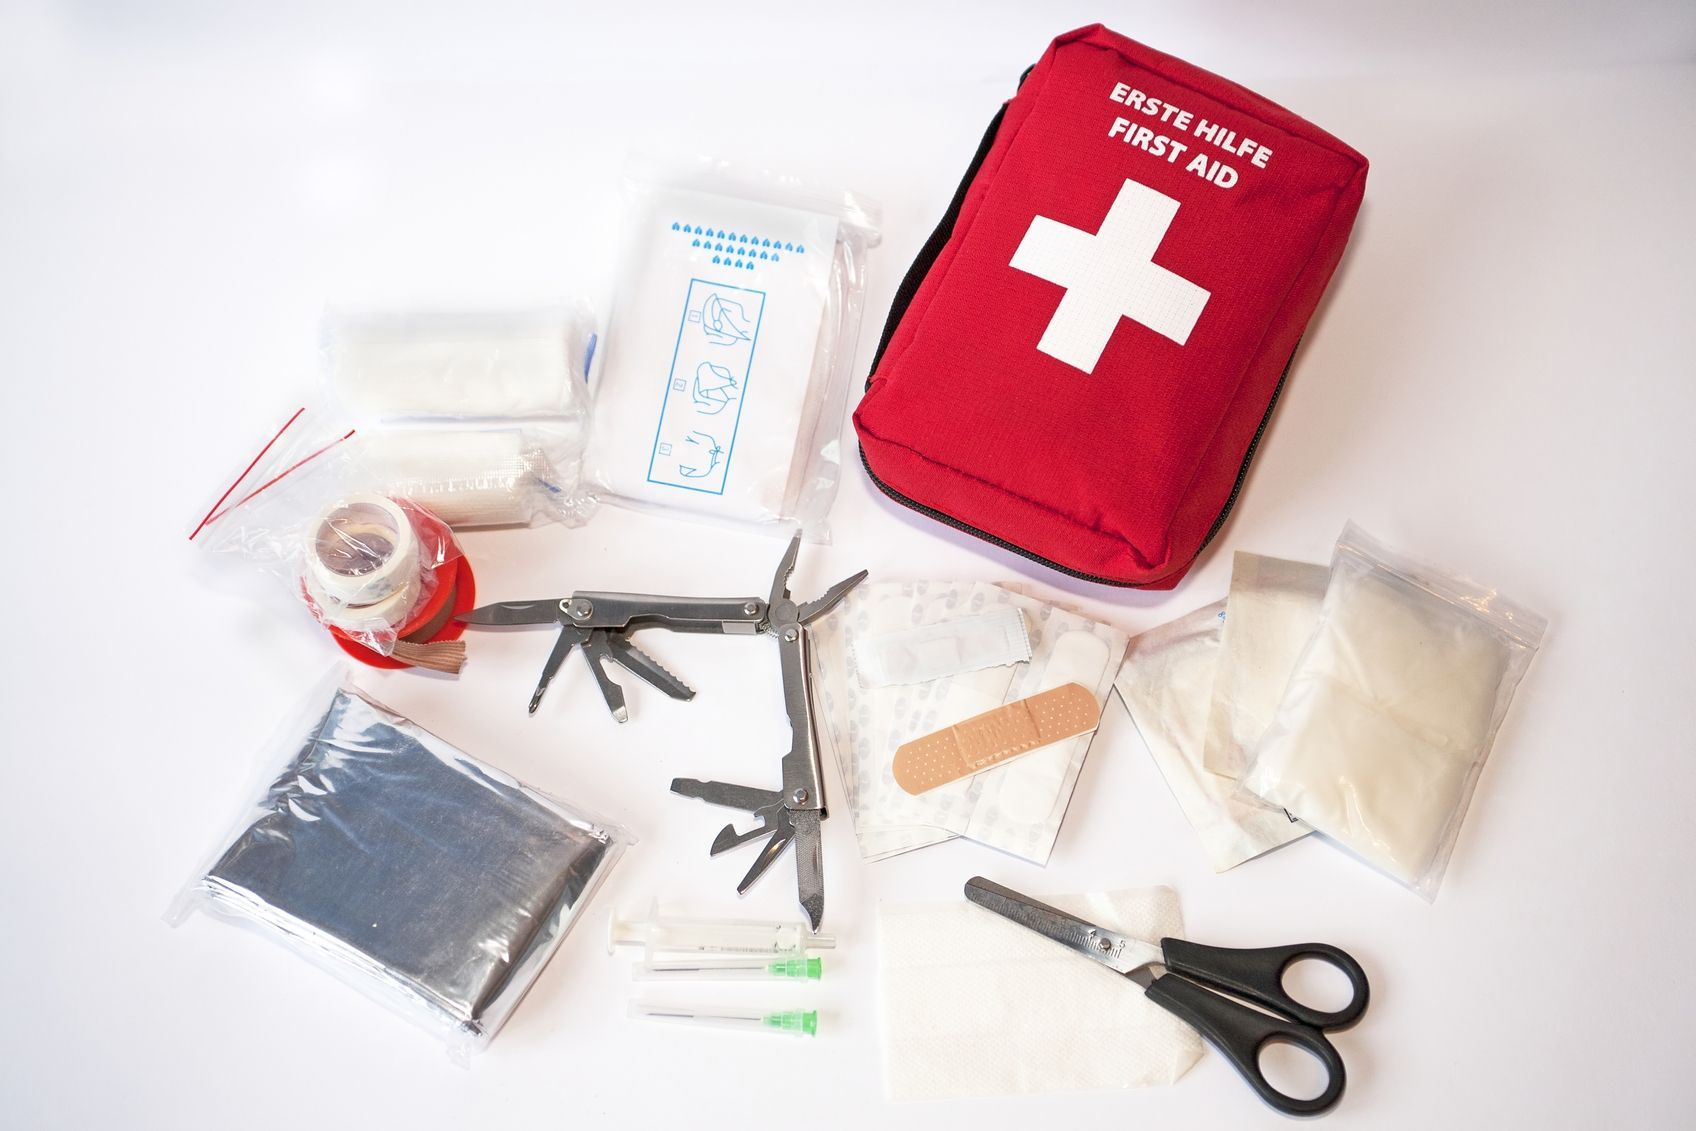 Comment transporter son kit de premier secours ?